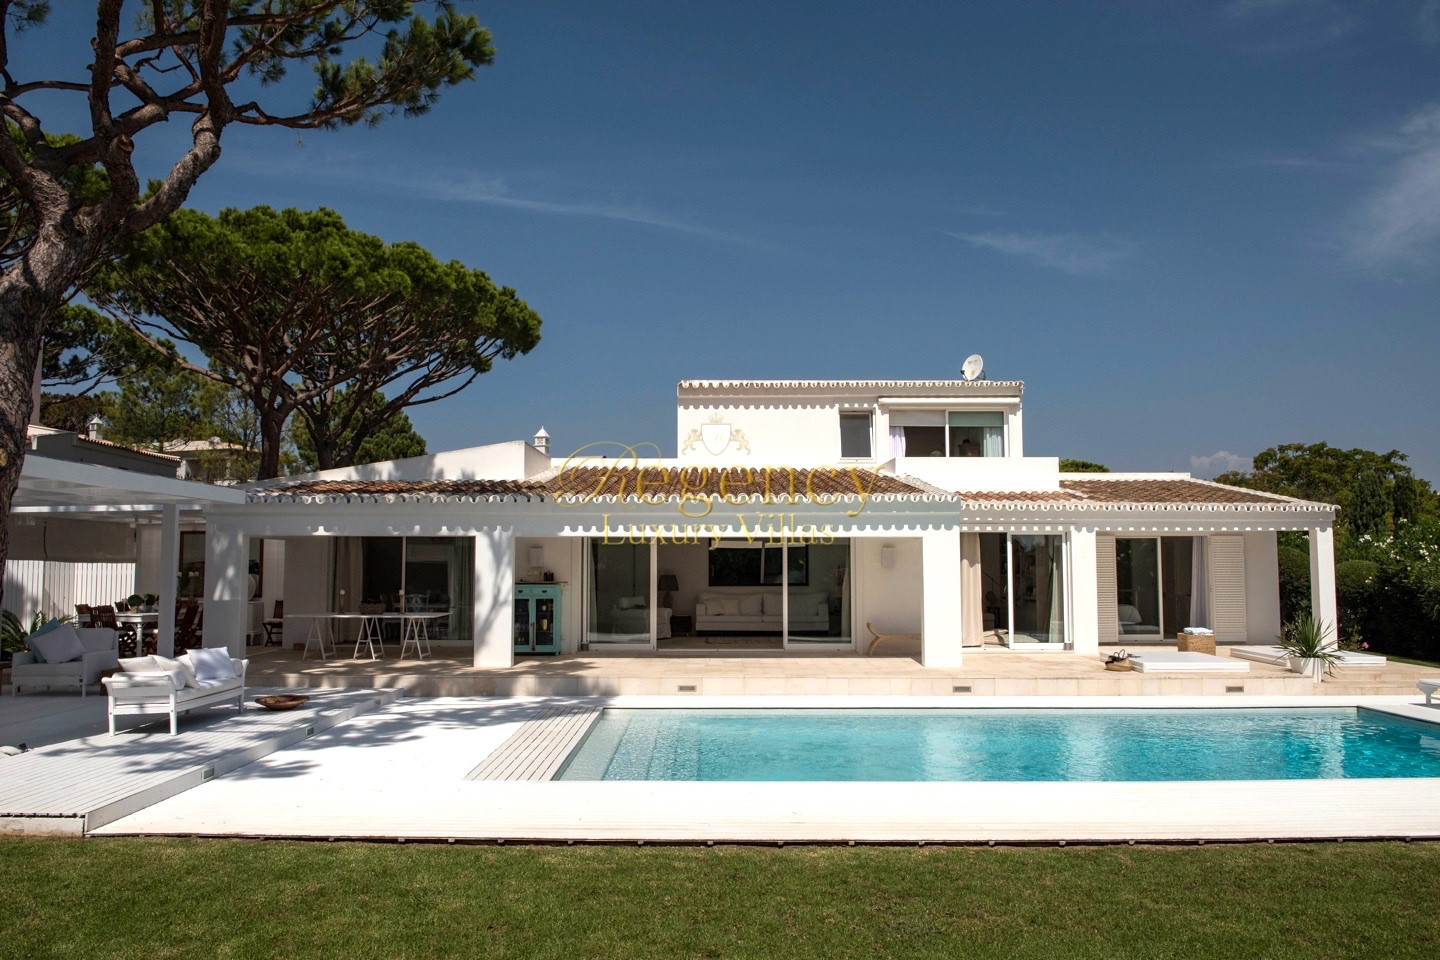 Quinta Do Lago Luxury Villas To Rent Near The Beach